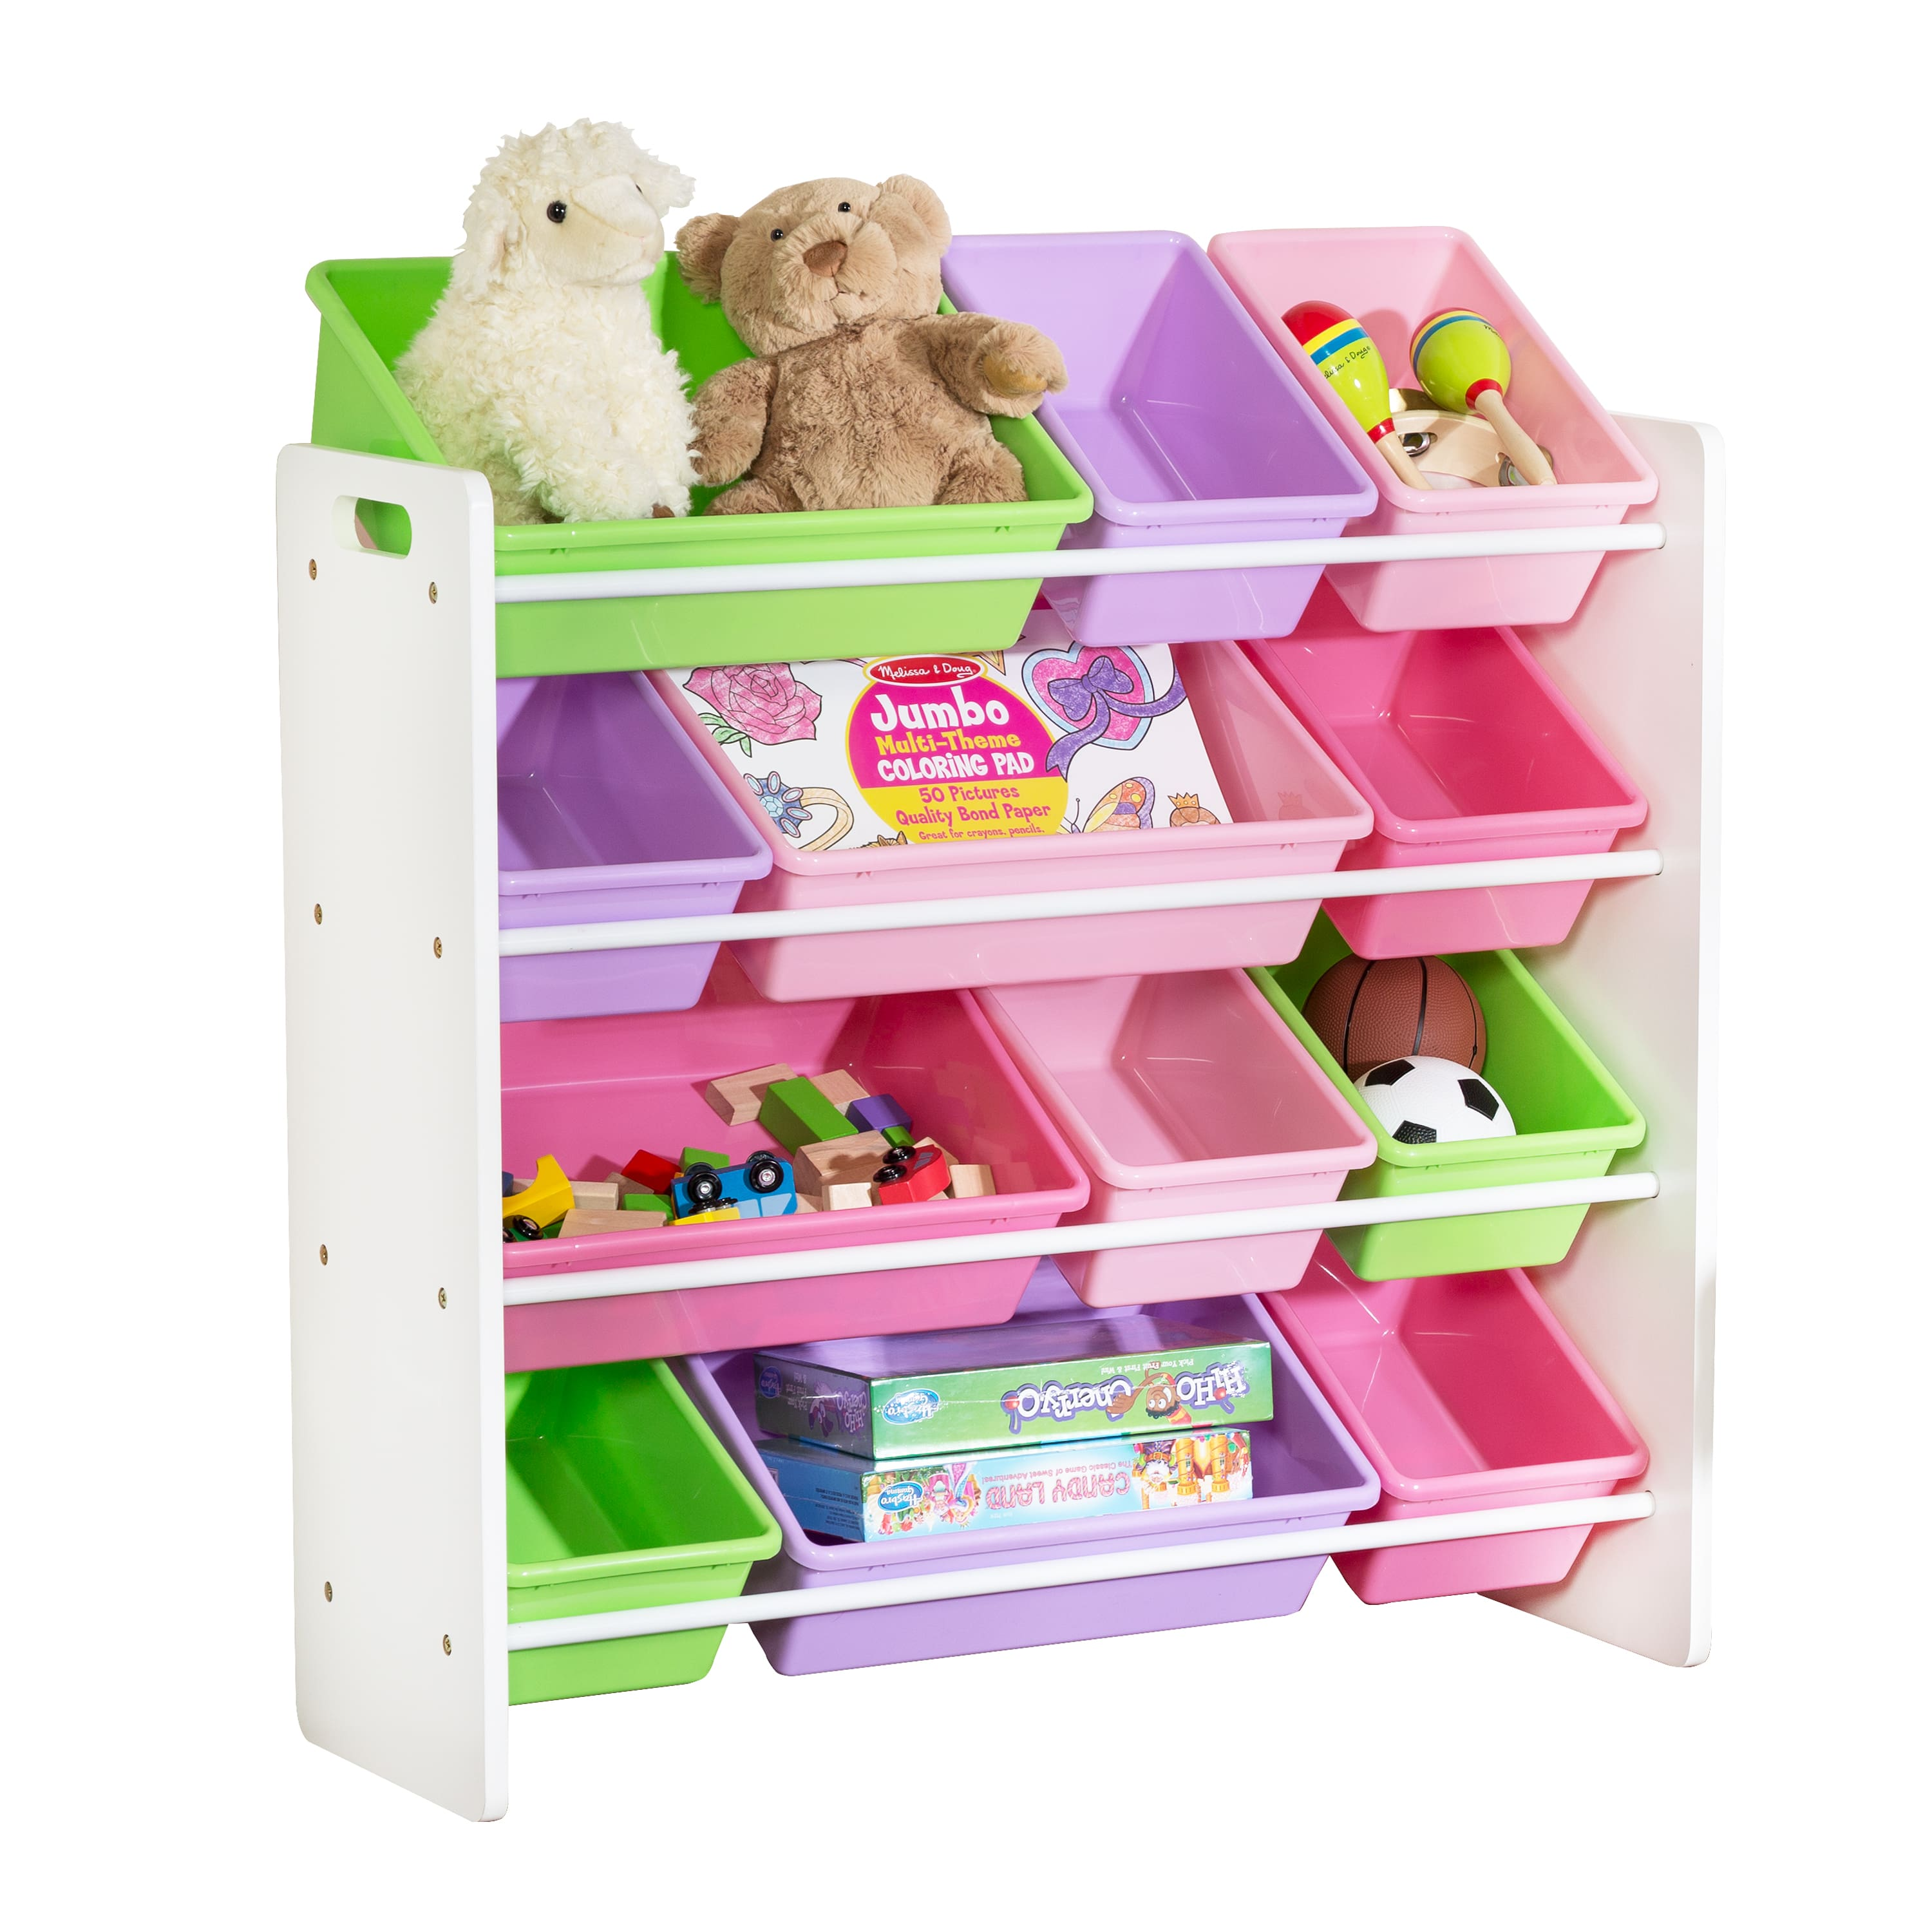 Walmart Offer Honey Can Do Kids Toy Organizer With 12 Storage Bins, Gray for $47.99 + Free Shipping